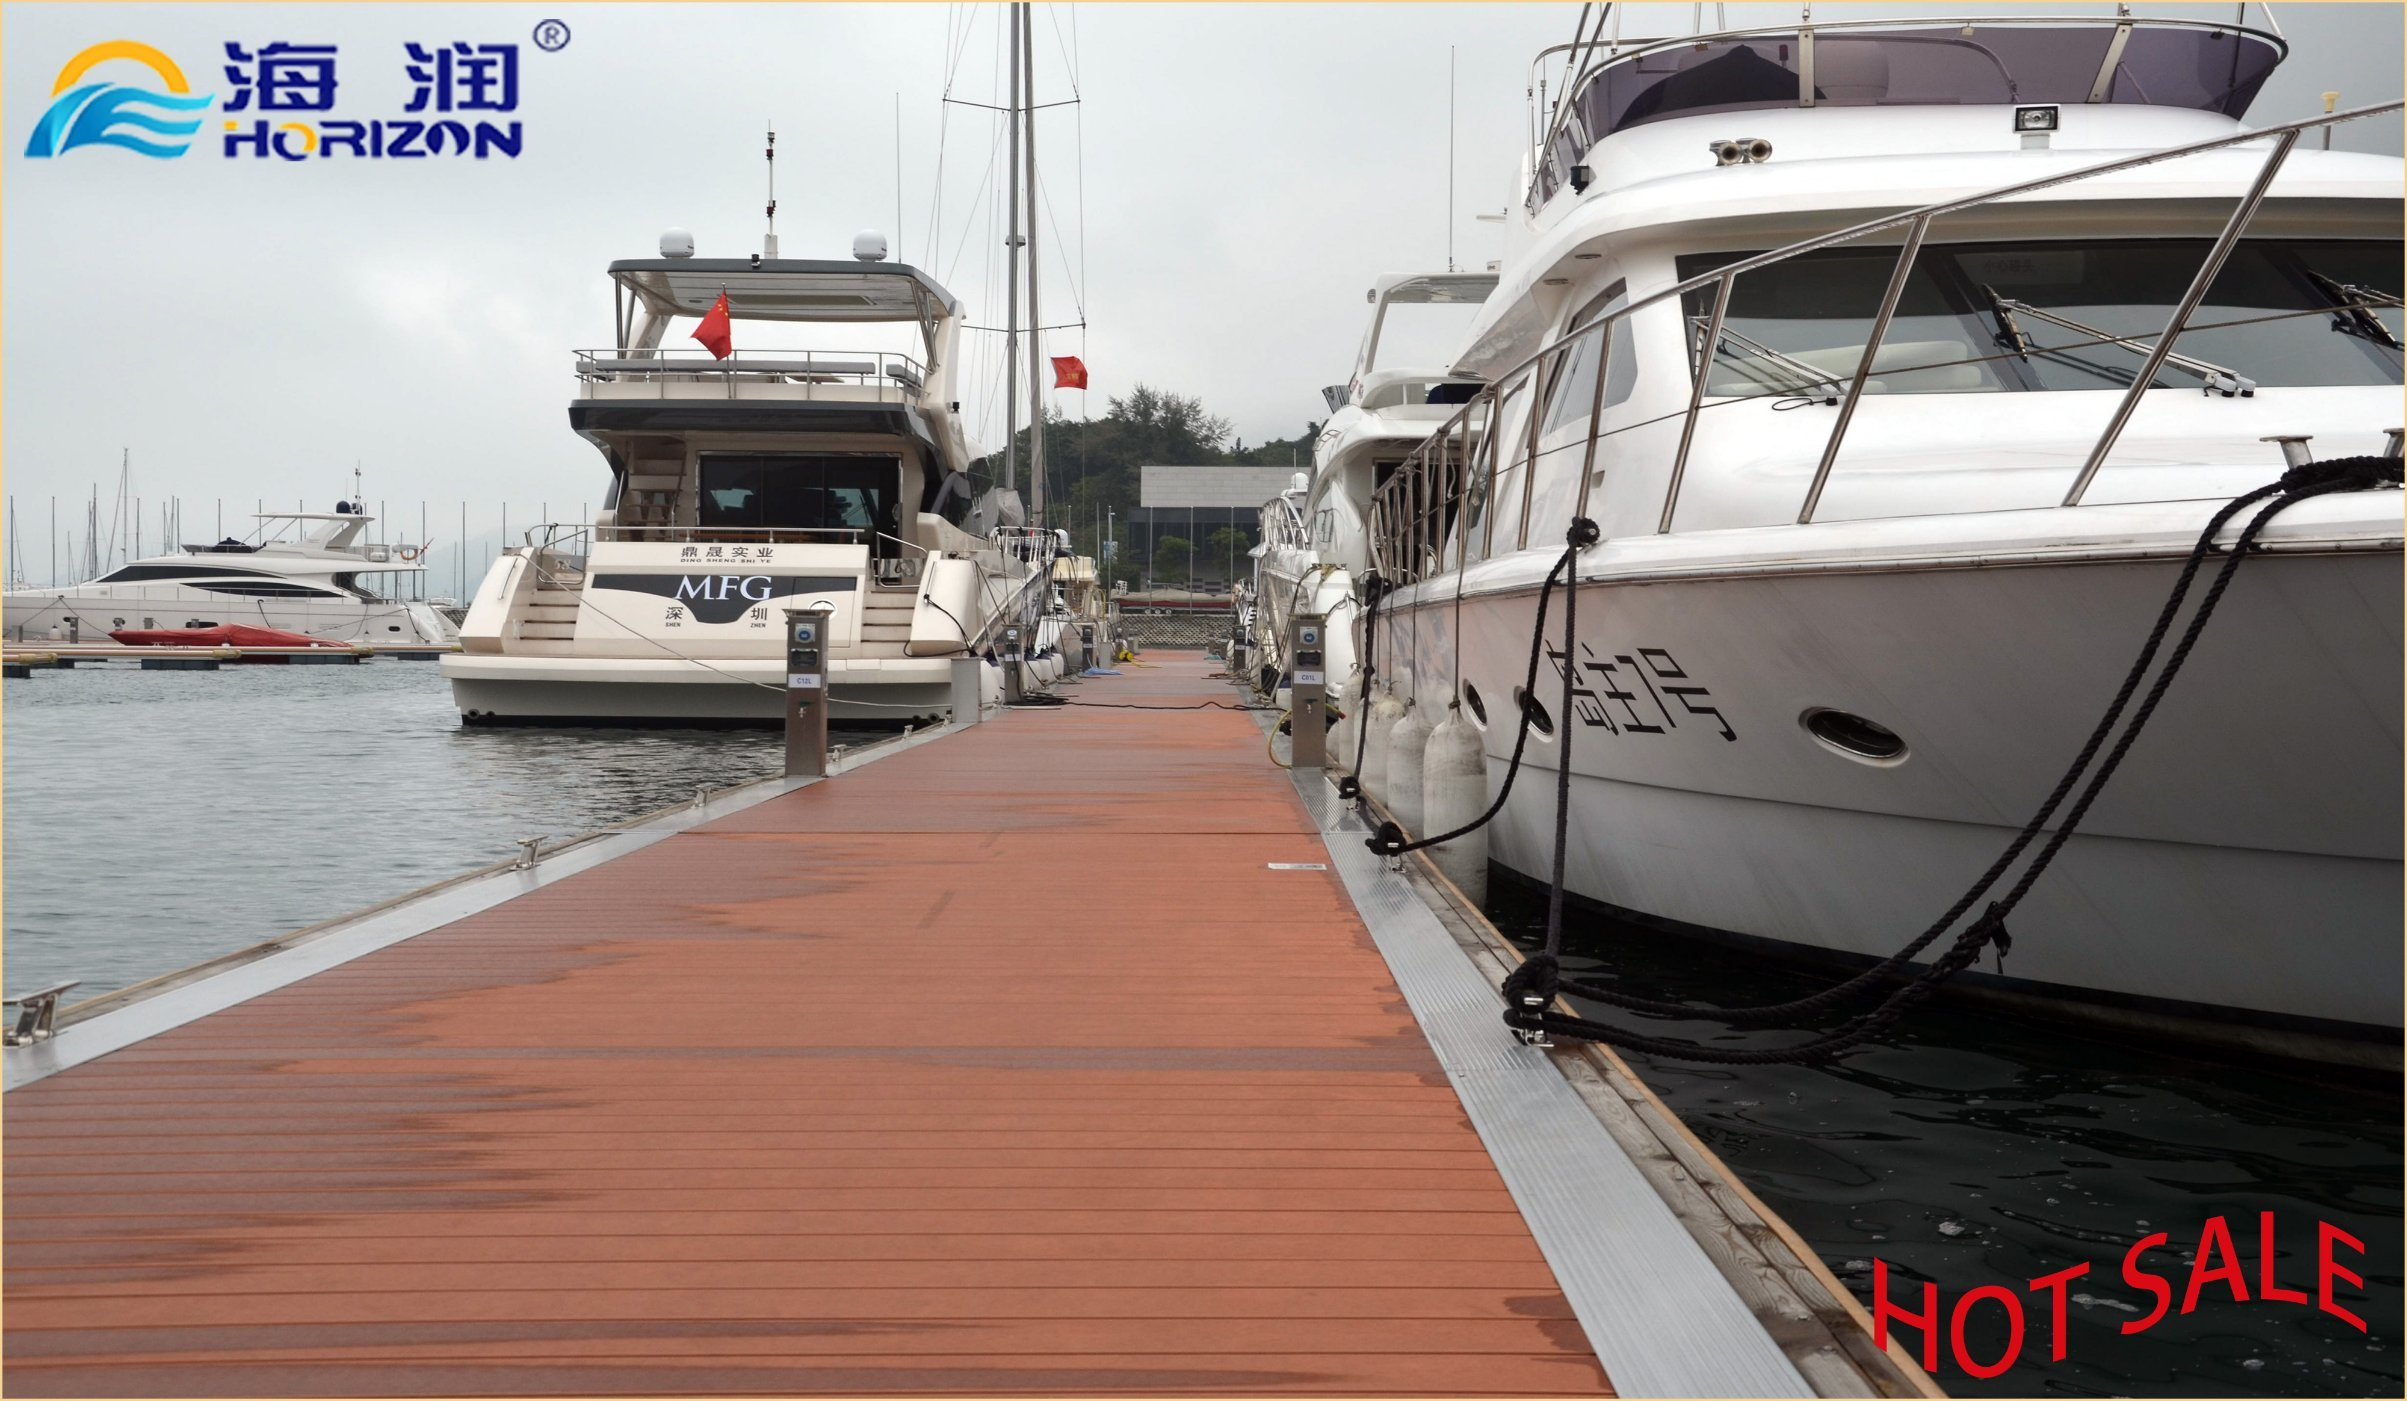 Big Sale Floating Dock with Hot DIP Galvanized Steel Dock